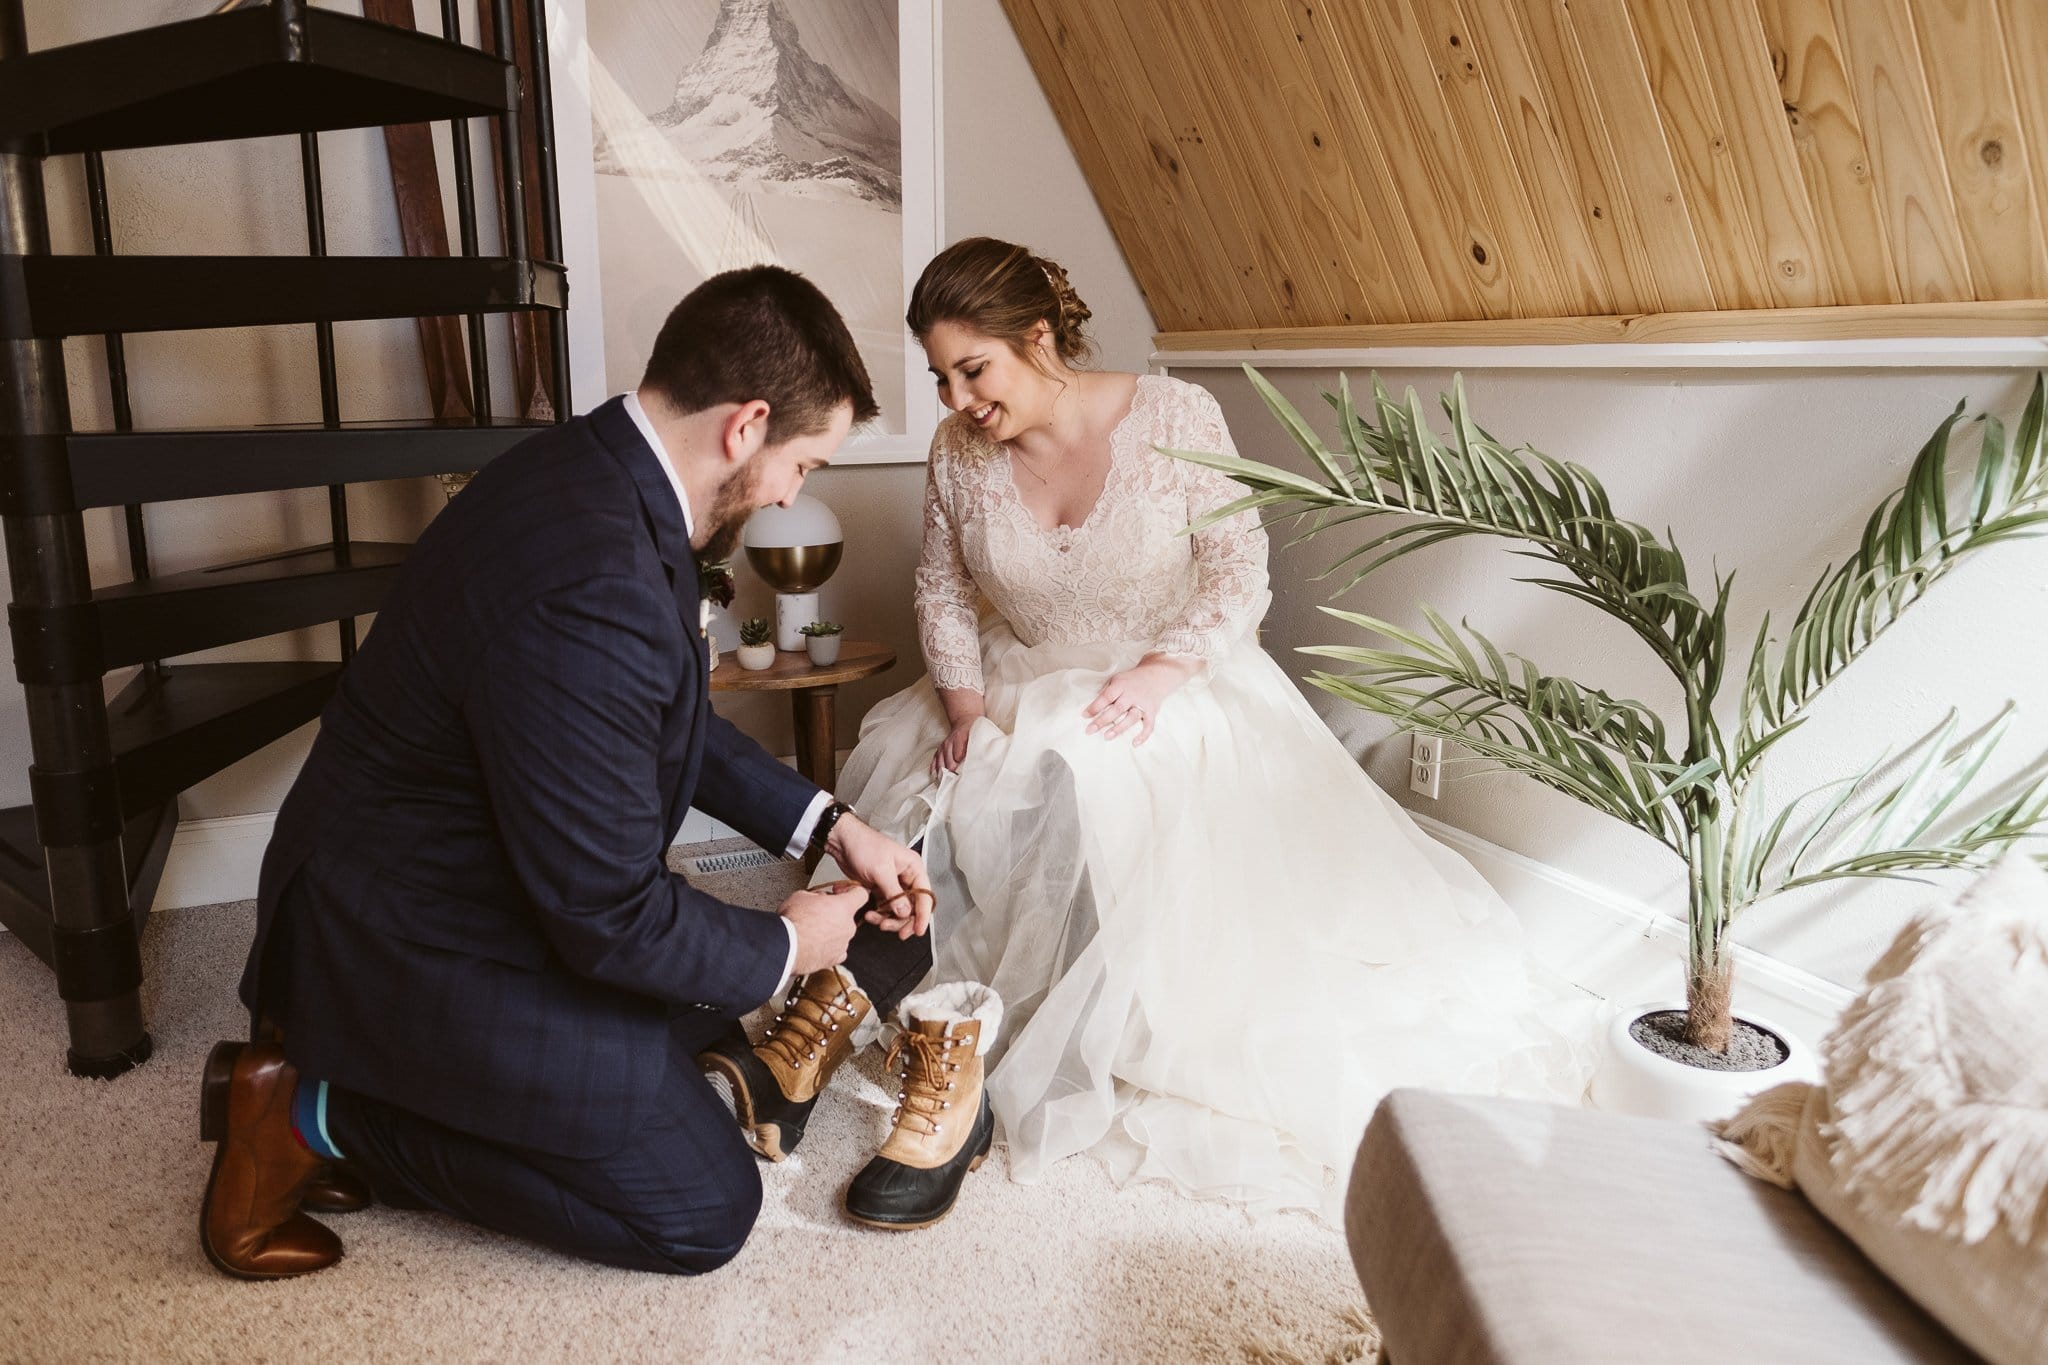 Groom helping bride put on ski boots at winter elopement in Breckenridge, Colorado.